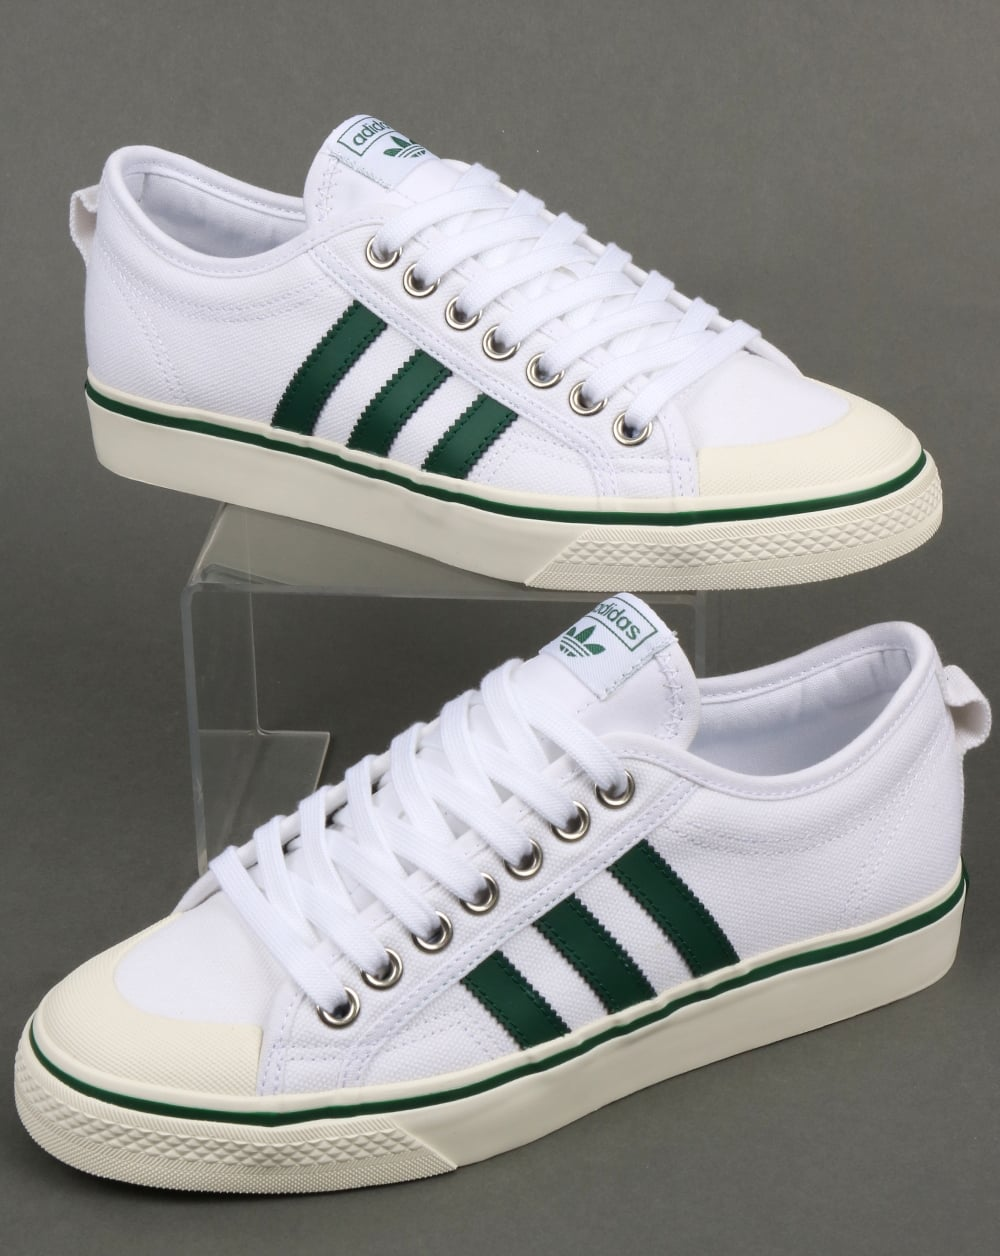 the best attitude 91718 cc29b adidas Trainers Adidas Nizza Trainers White Green